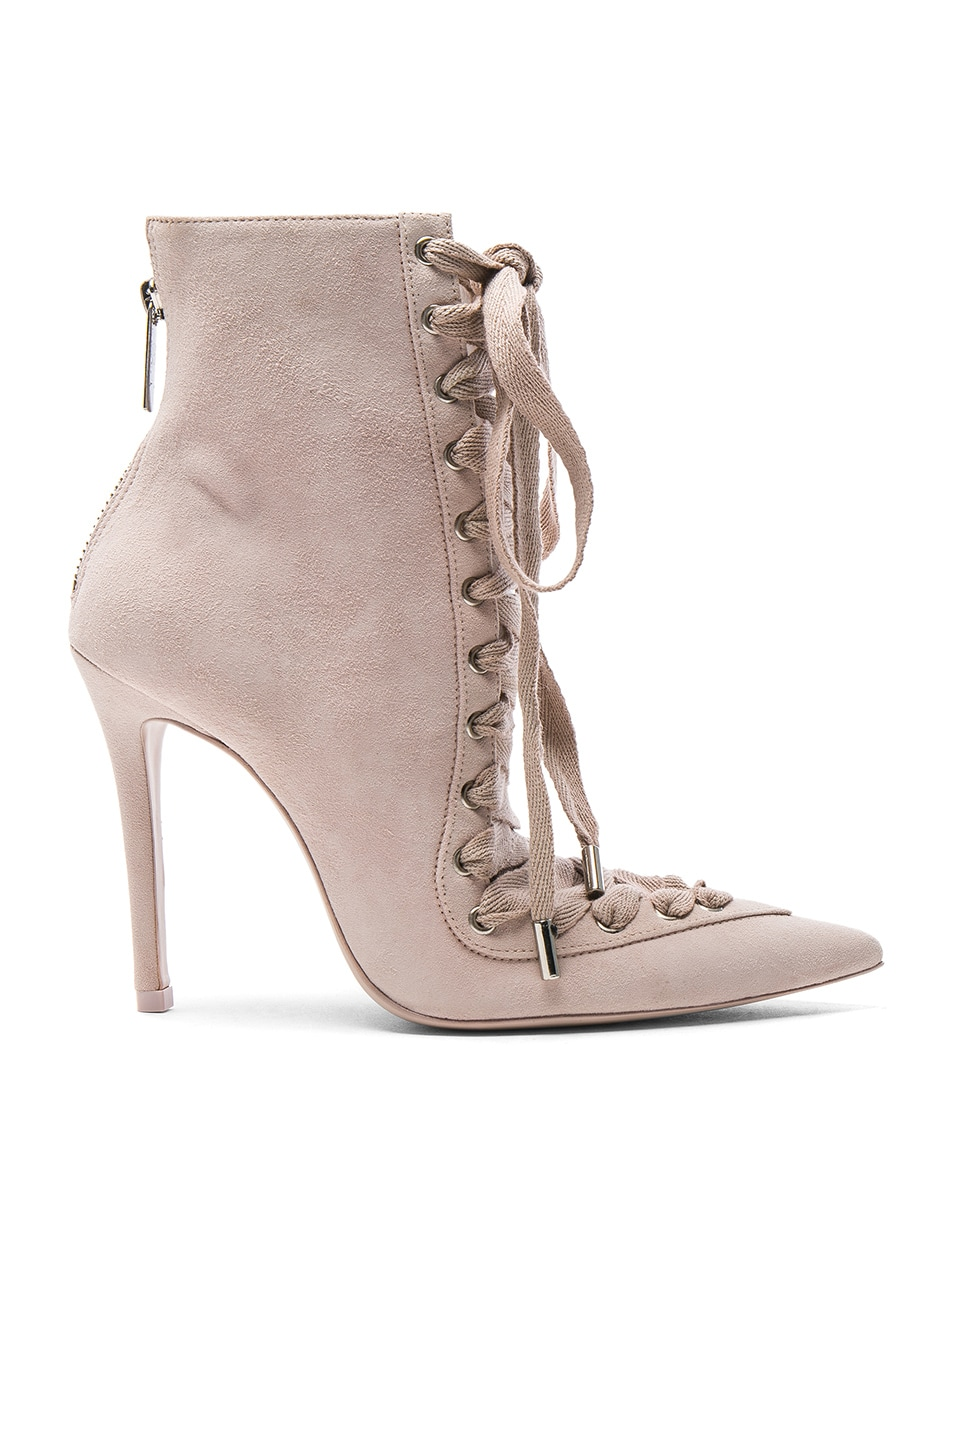 Image 1 of Zimmermann Lace Up Suede Ankle Boots in Blush